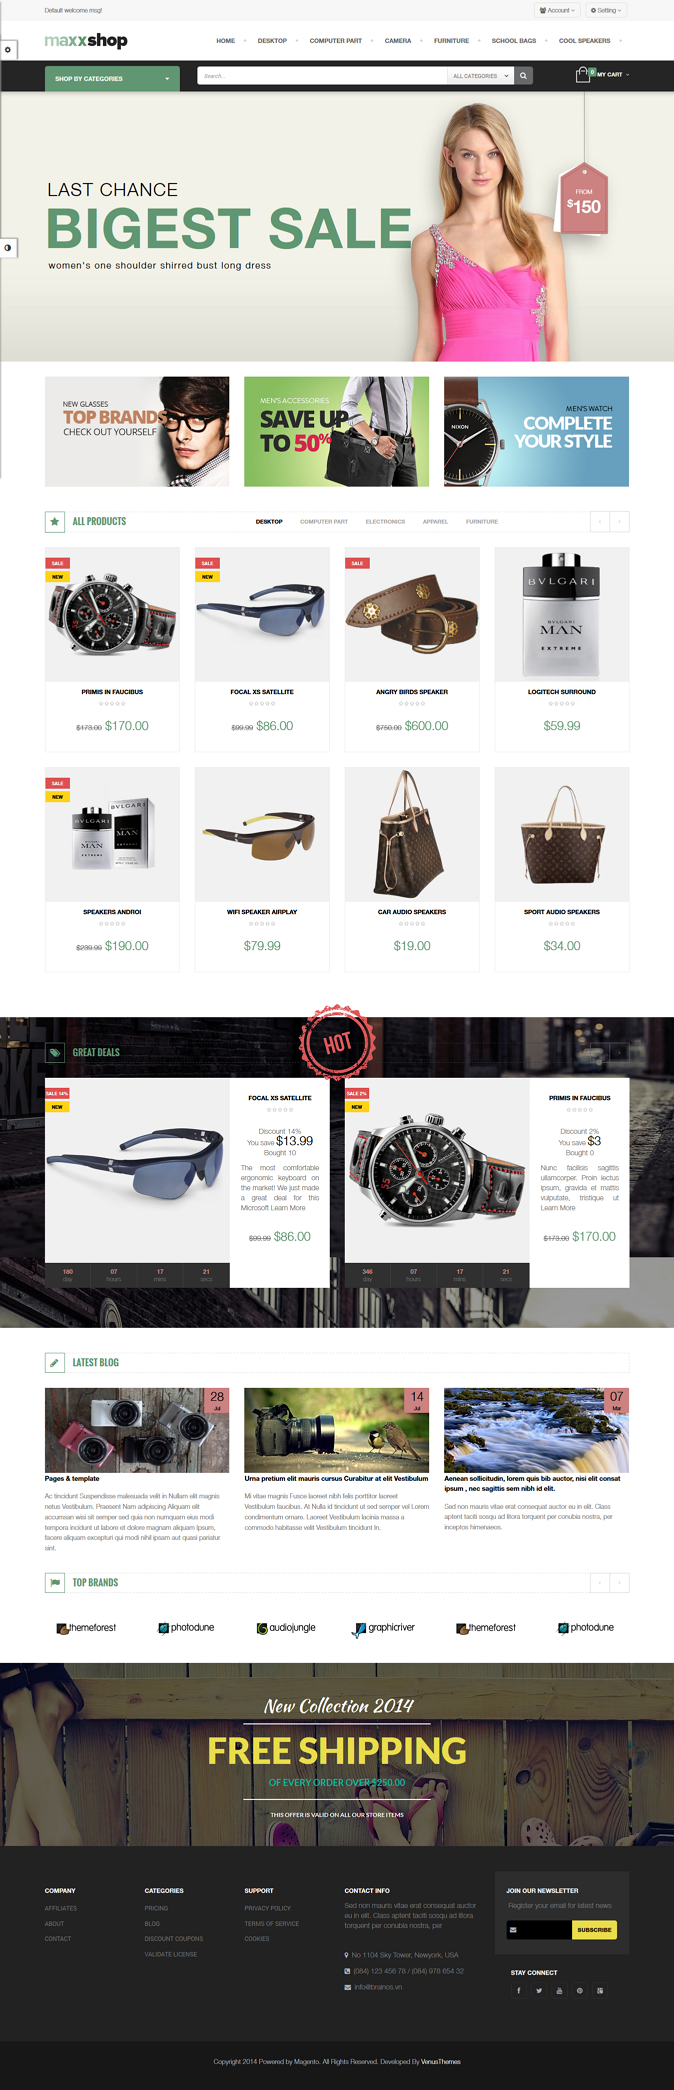 Maxx Store is a Responsive Magento Template suitable for any kind of Fashion Style, Glasses, Hig ...